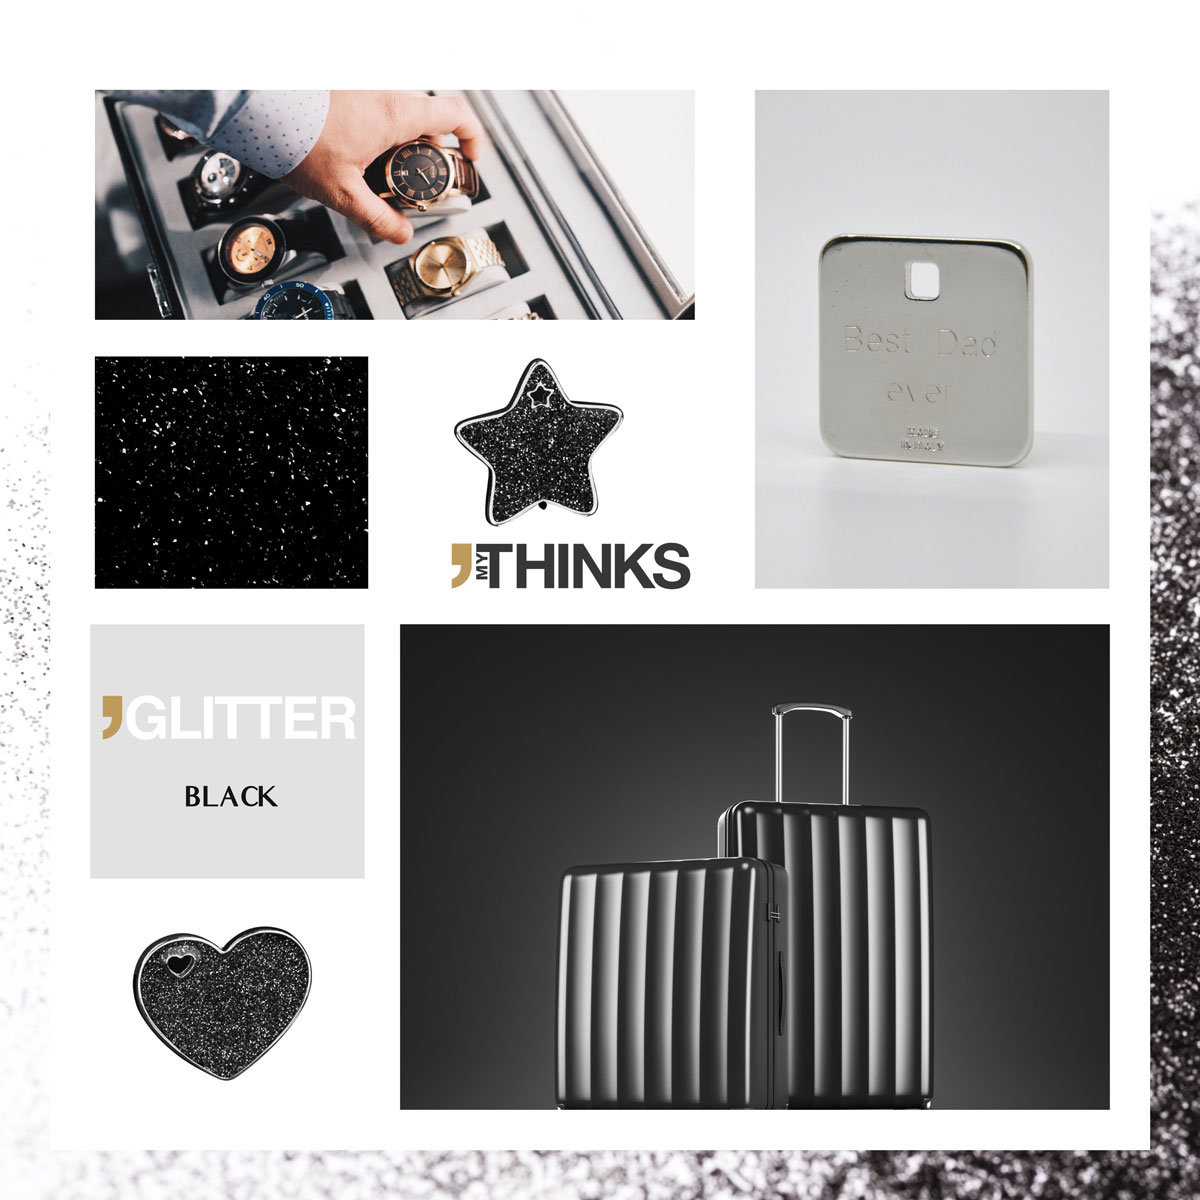 Mood board Glitter collection gifts with shiny black enamelling on chromed zamak medal personalized for the luxury good and lugagge and travel accessories market